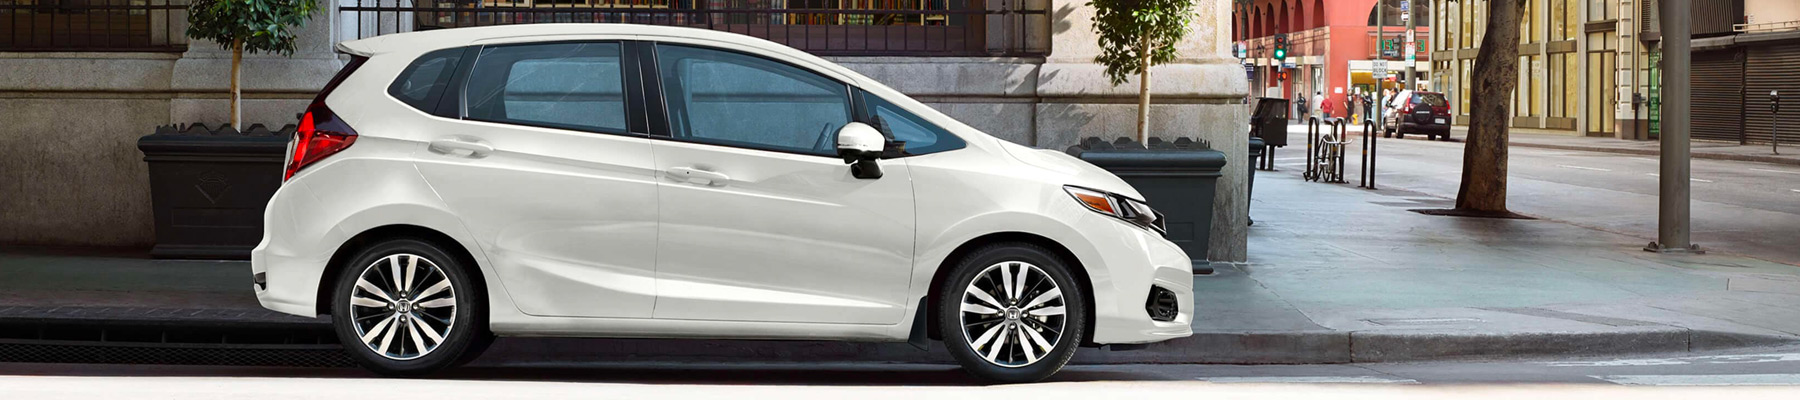 2019 Honda Fit Sideview Banner